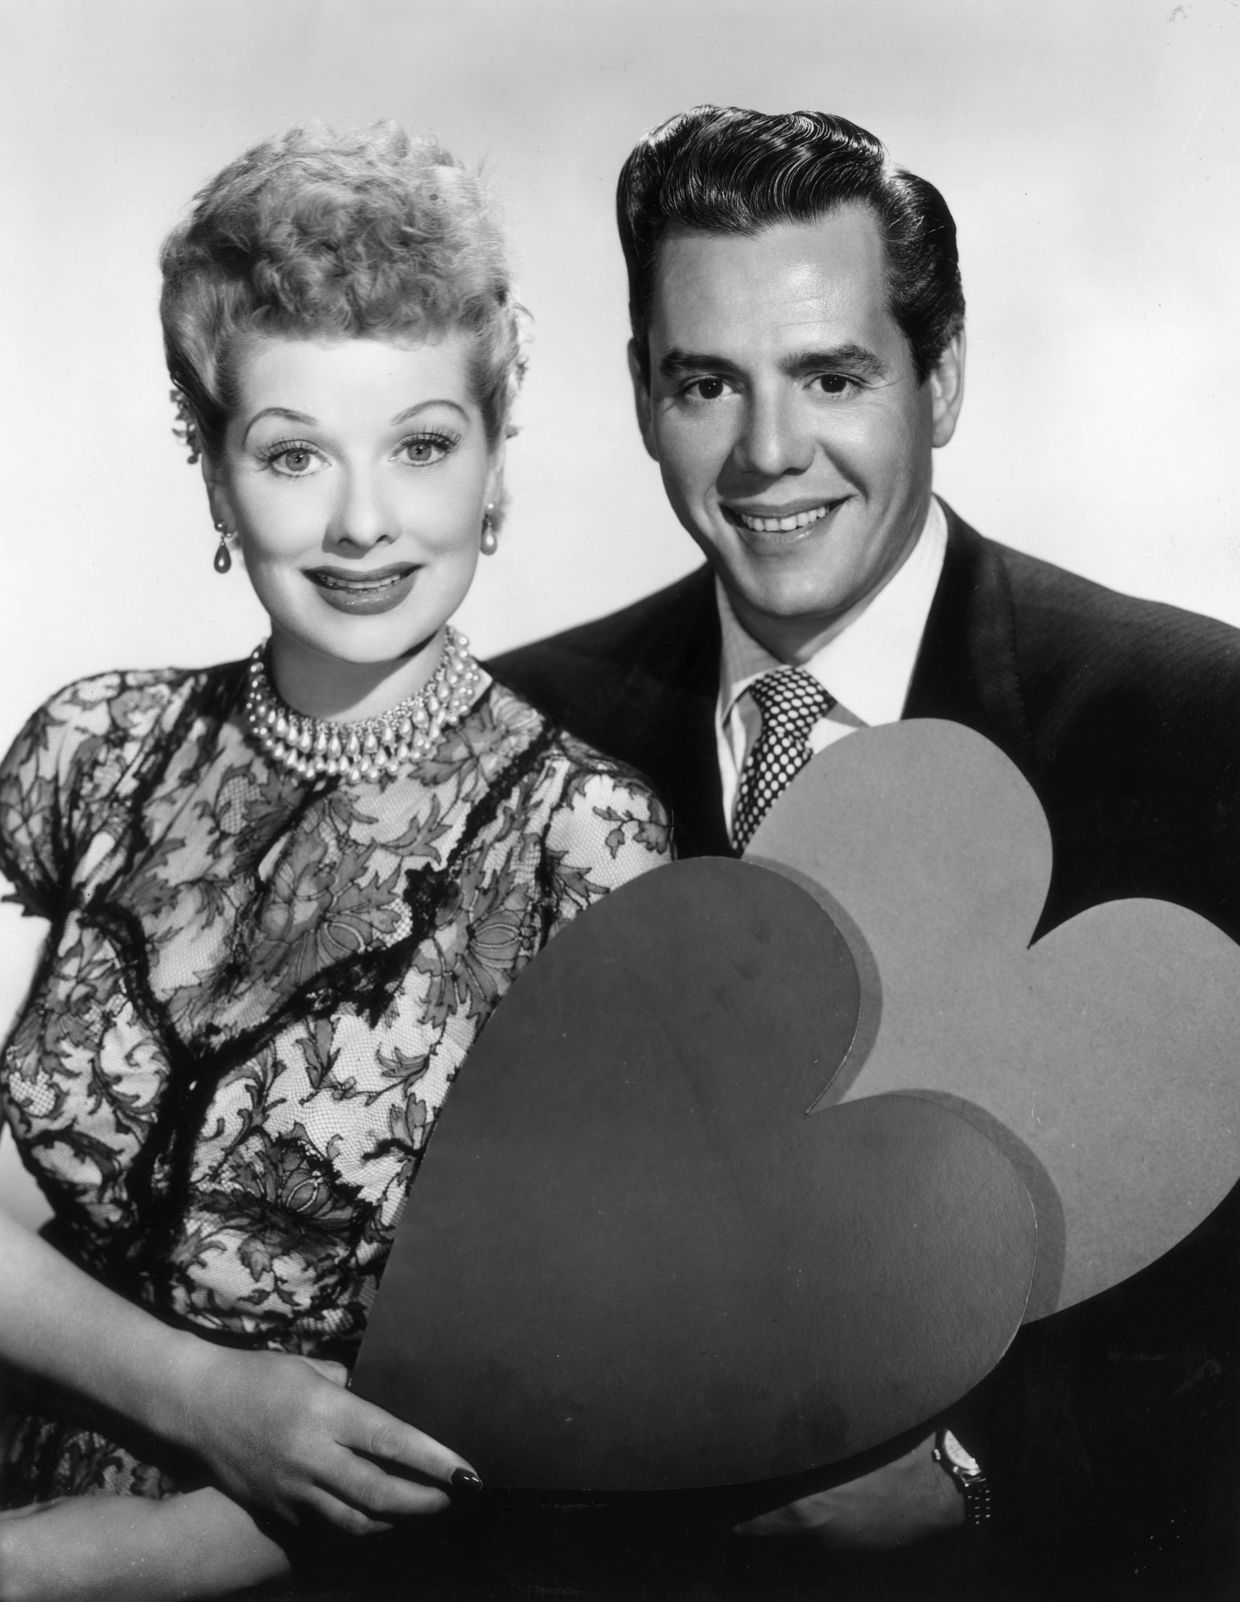 At the End of His Life, Desi Arnaz Wrote the Sweetest Thing About Lucille Ball #lucilleball Desi Arnaz Quote About Lucille Ball - Lucille Ball Trivia #lucilleball